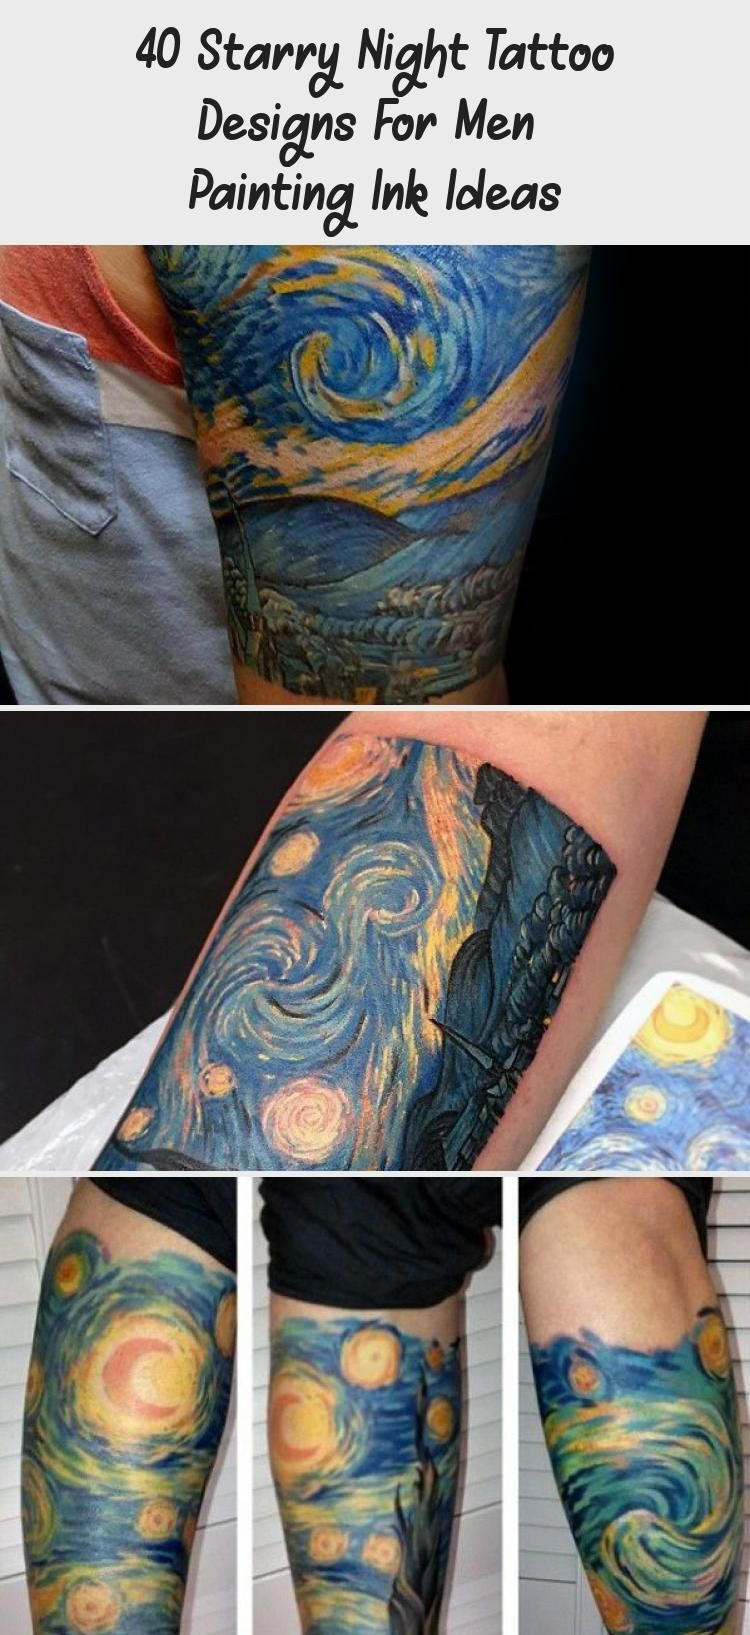 40 Starry Night Tattoo Designs For Men Painting Ink Ideas In